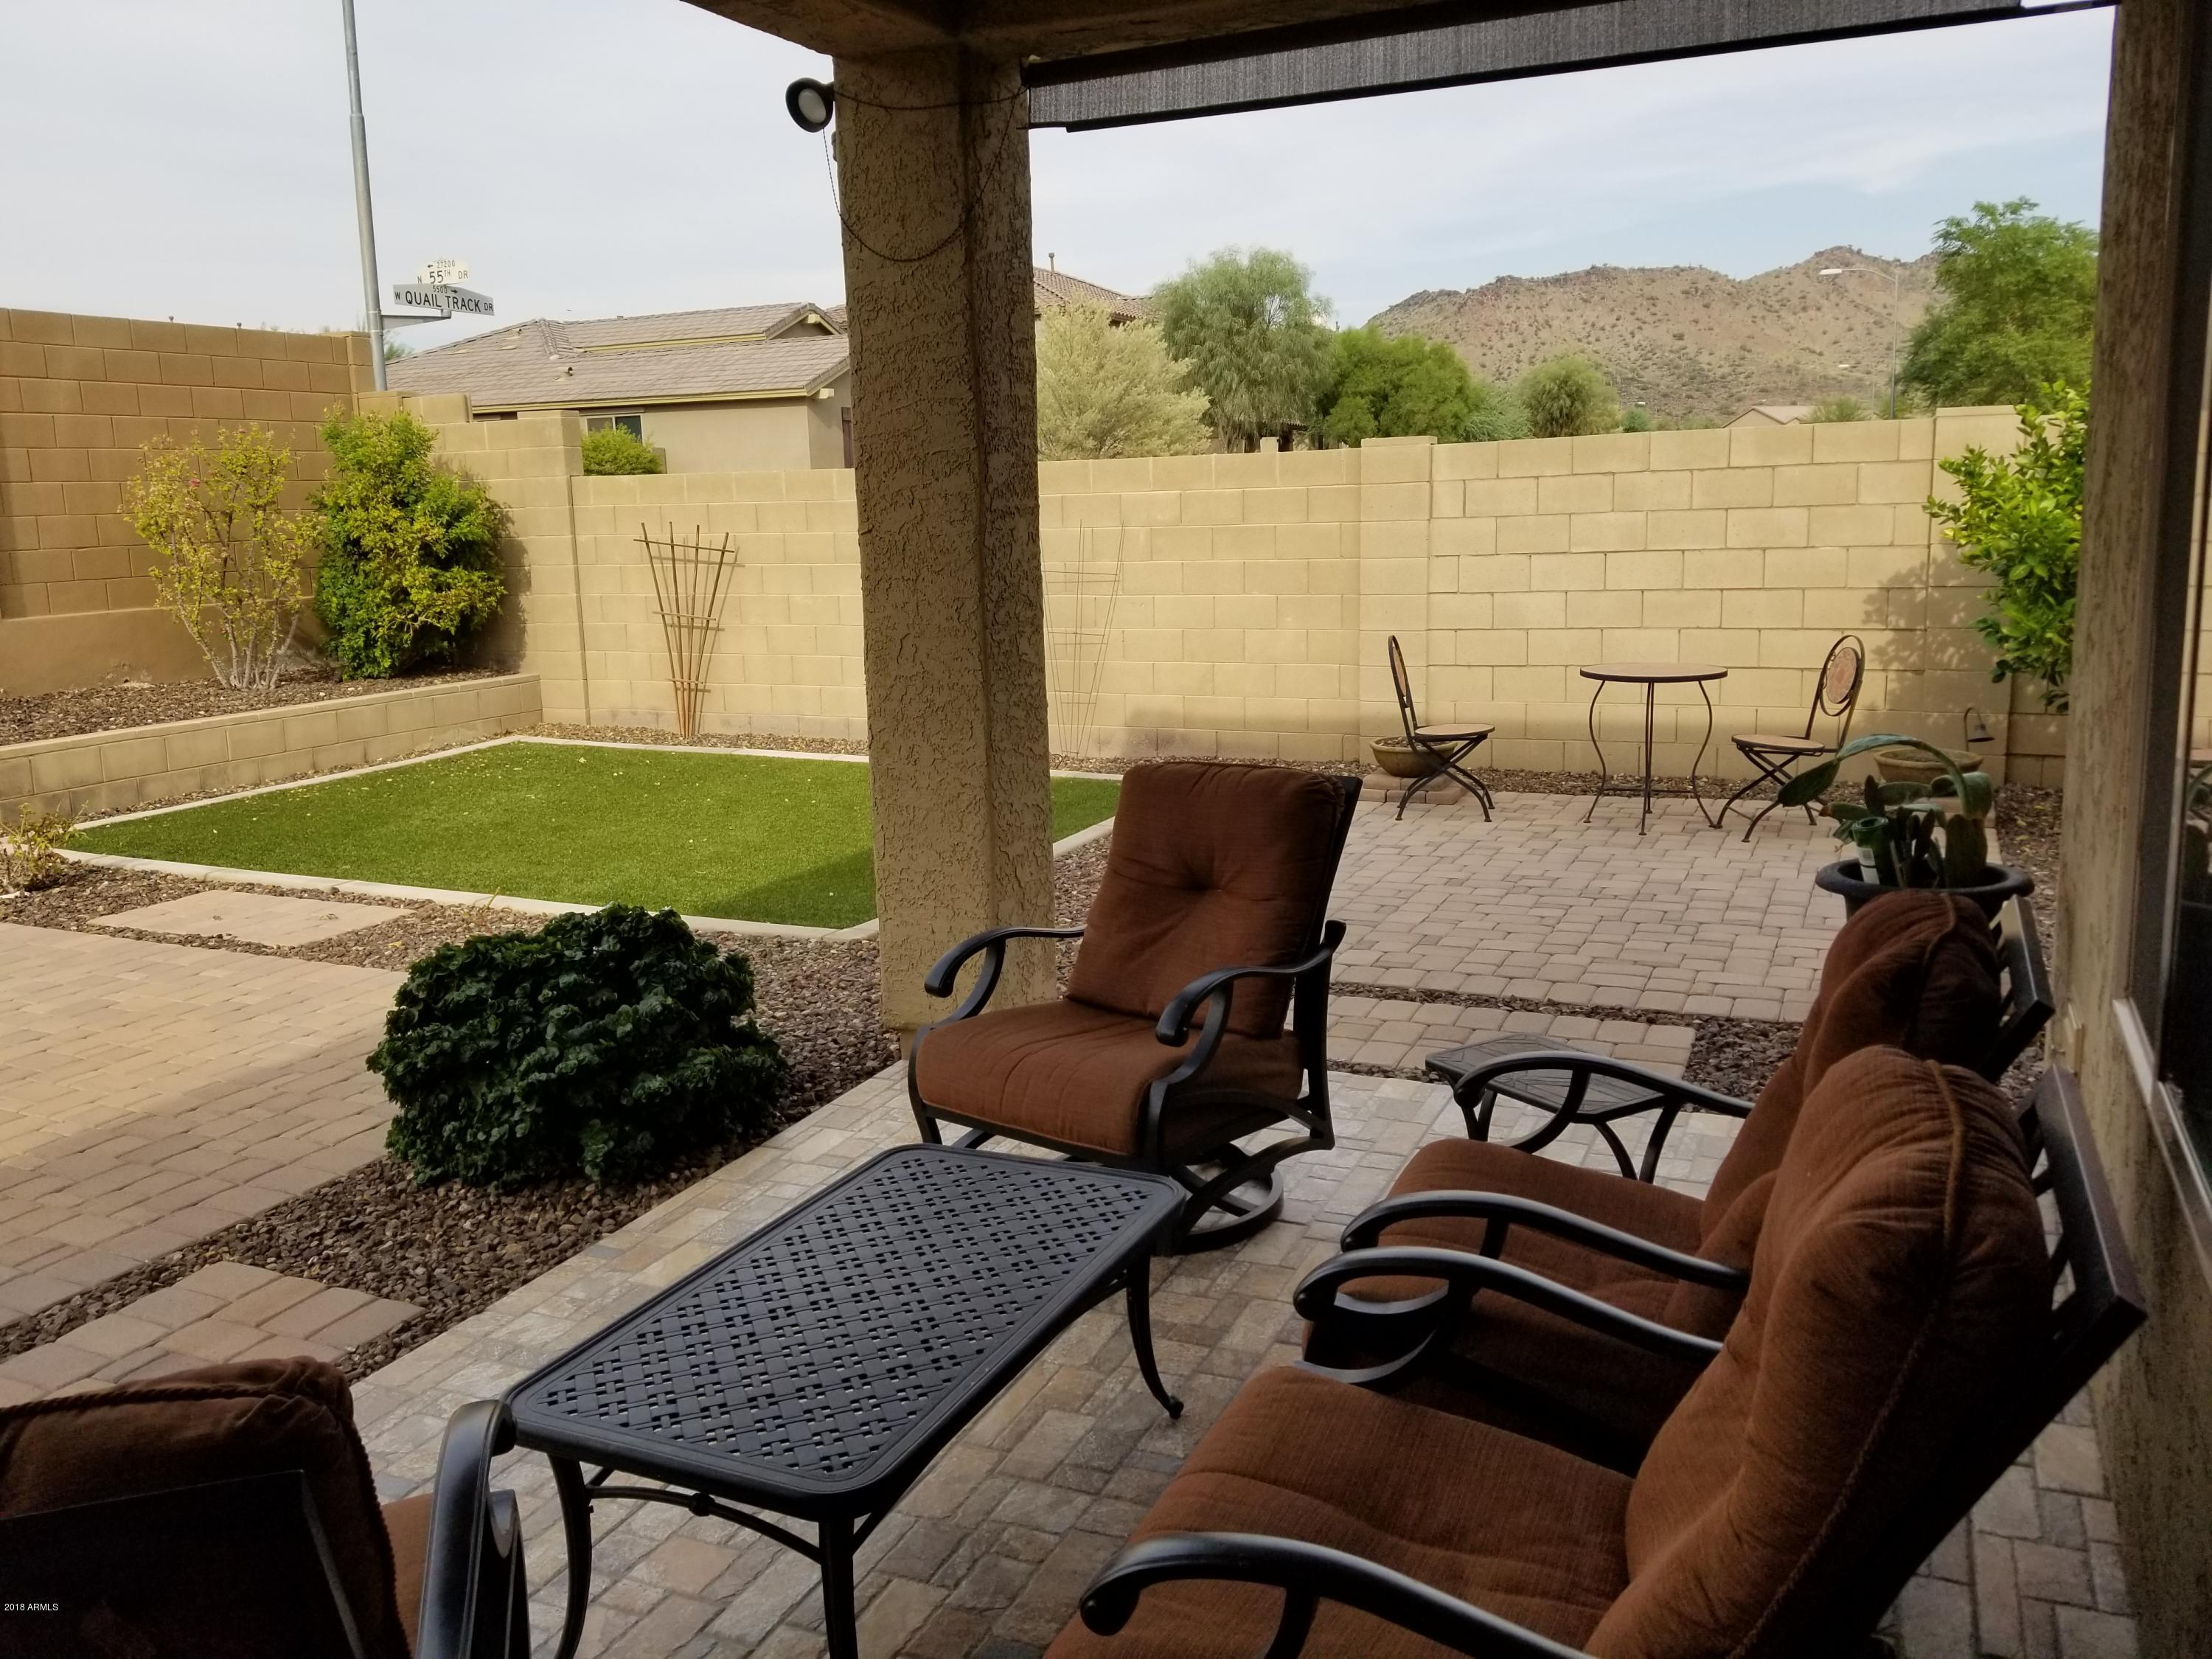 Beautiful well maintained fully furnished home with outdoor furniture and bbq in north phoenix area granite counter tops with a full kitchen